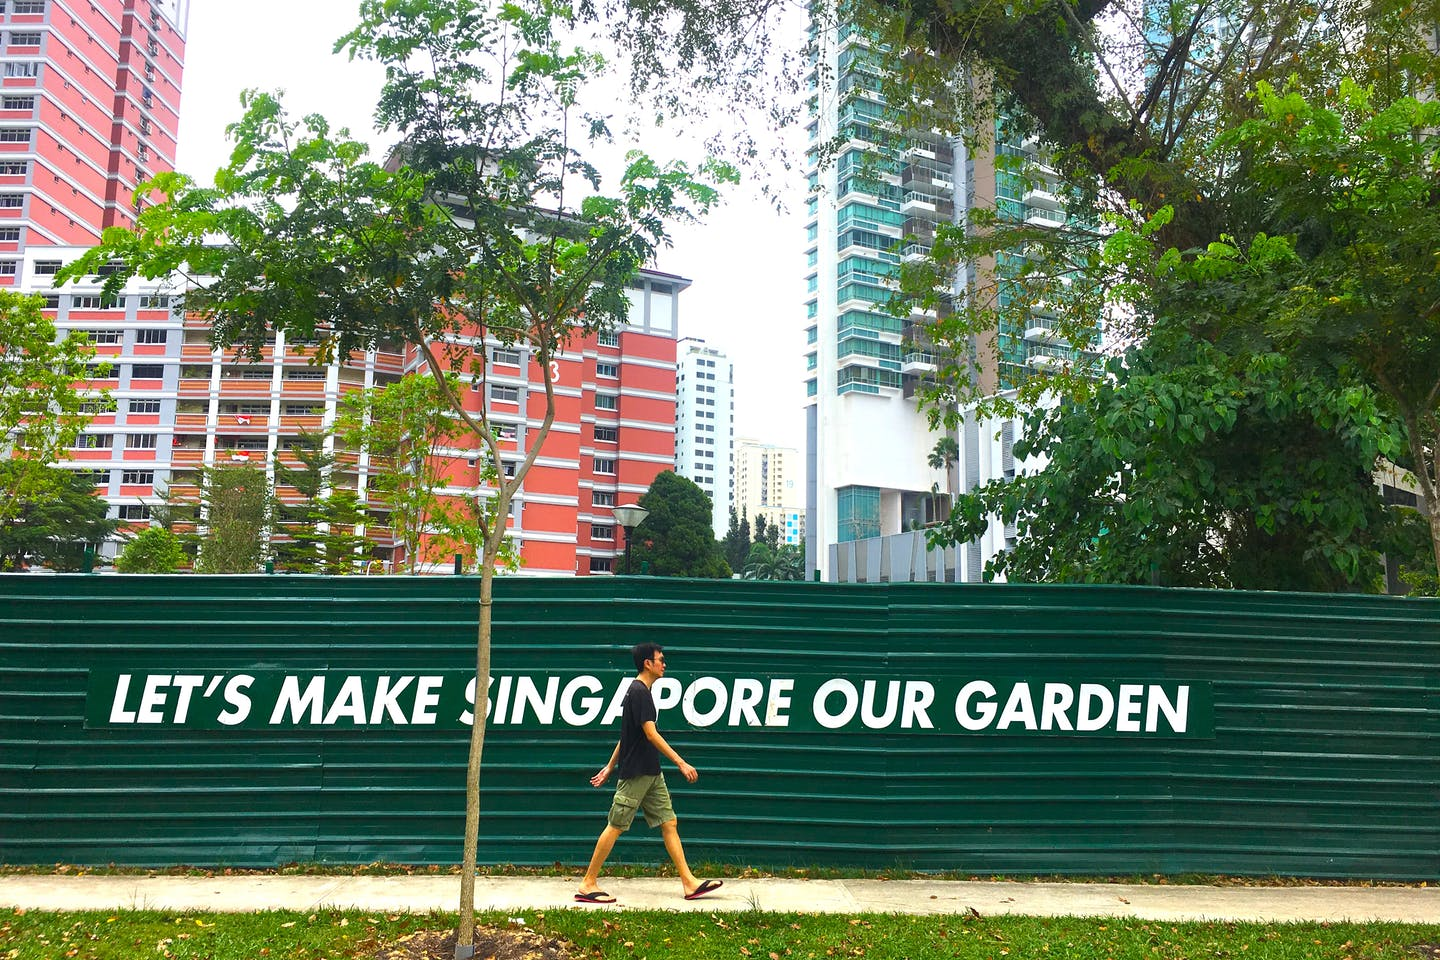 Singapore's 'City in a Garden' plan has seen a network of parks, nature reserves and greened buildings span the 70 kilometre-squared island—but the country has just 0.5 per cent primary forest cover left. Image: Eco-Business